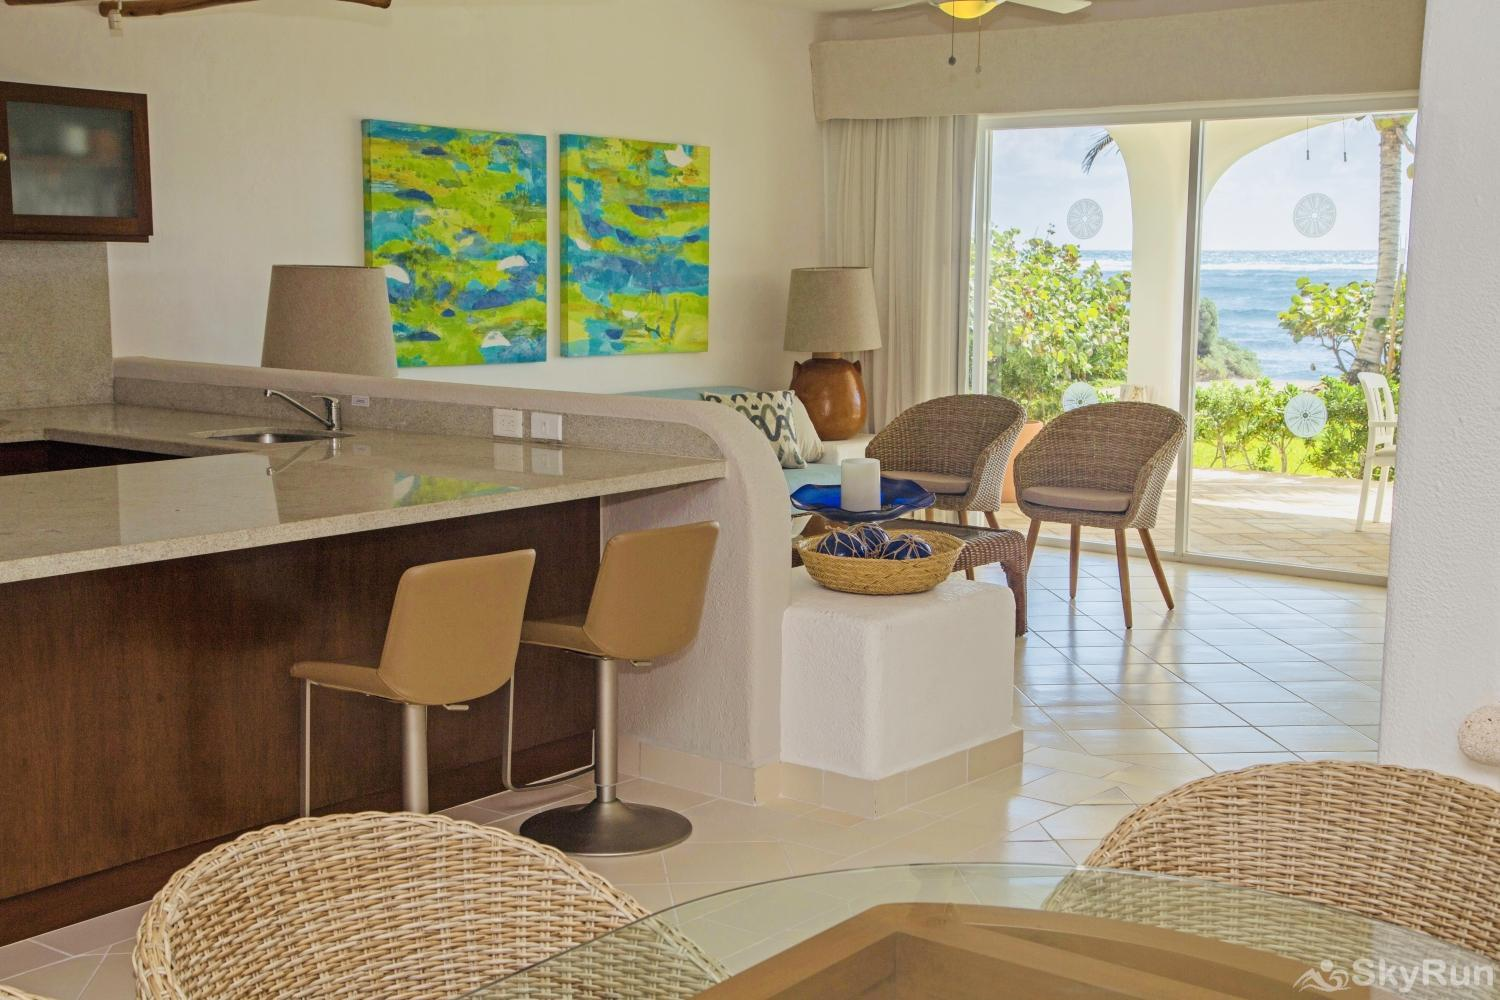 Ocean View Home-craft Condo 213, 3 Bedroom Spectacular Location Kitchen & Dining Room area